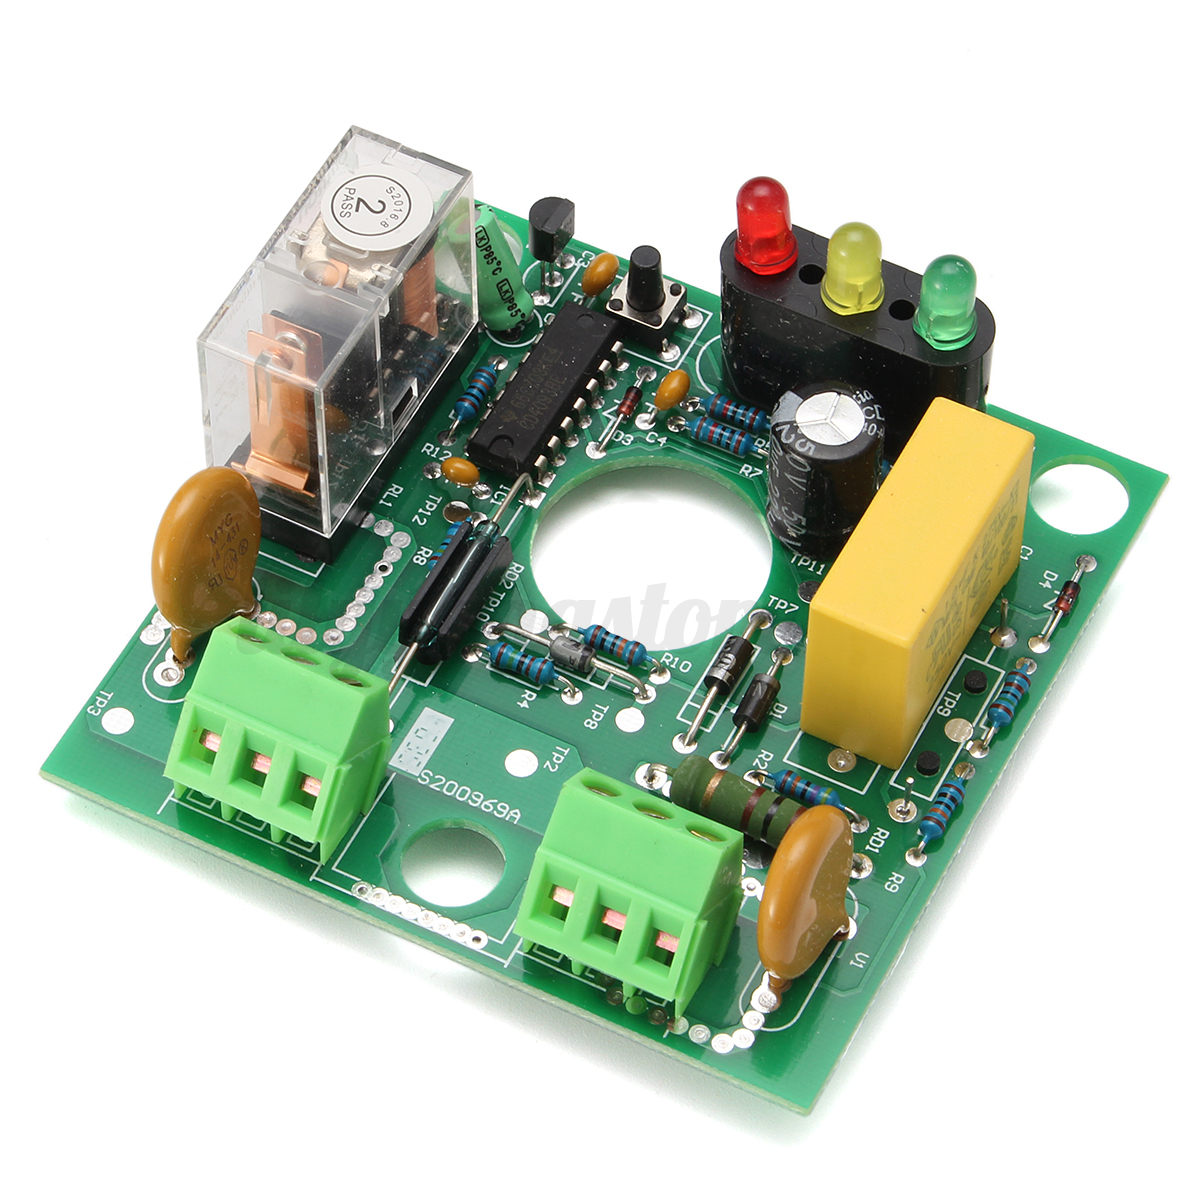 Water Pump Automatic Pressure Control Electronic Switch Circuit Printed Board Royalty Free Stock Photography Detail Image